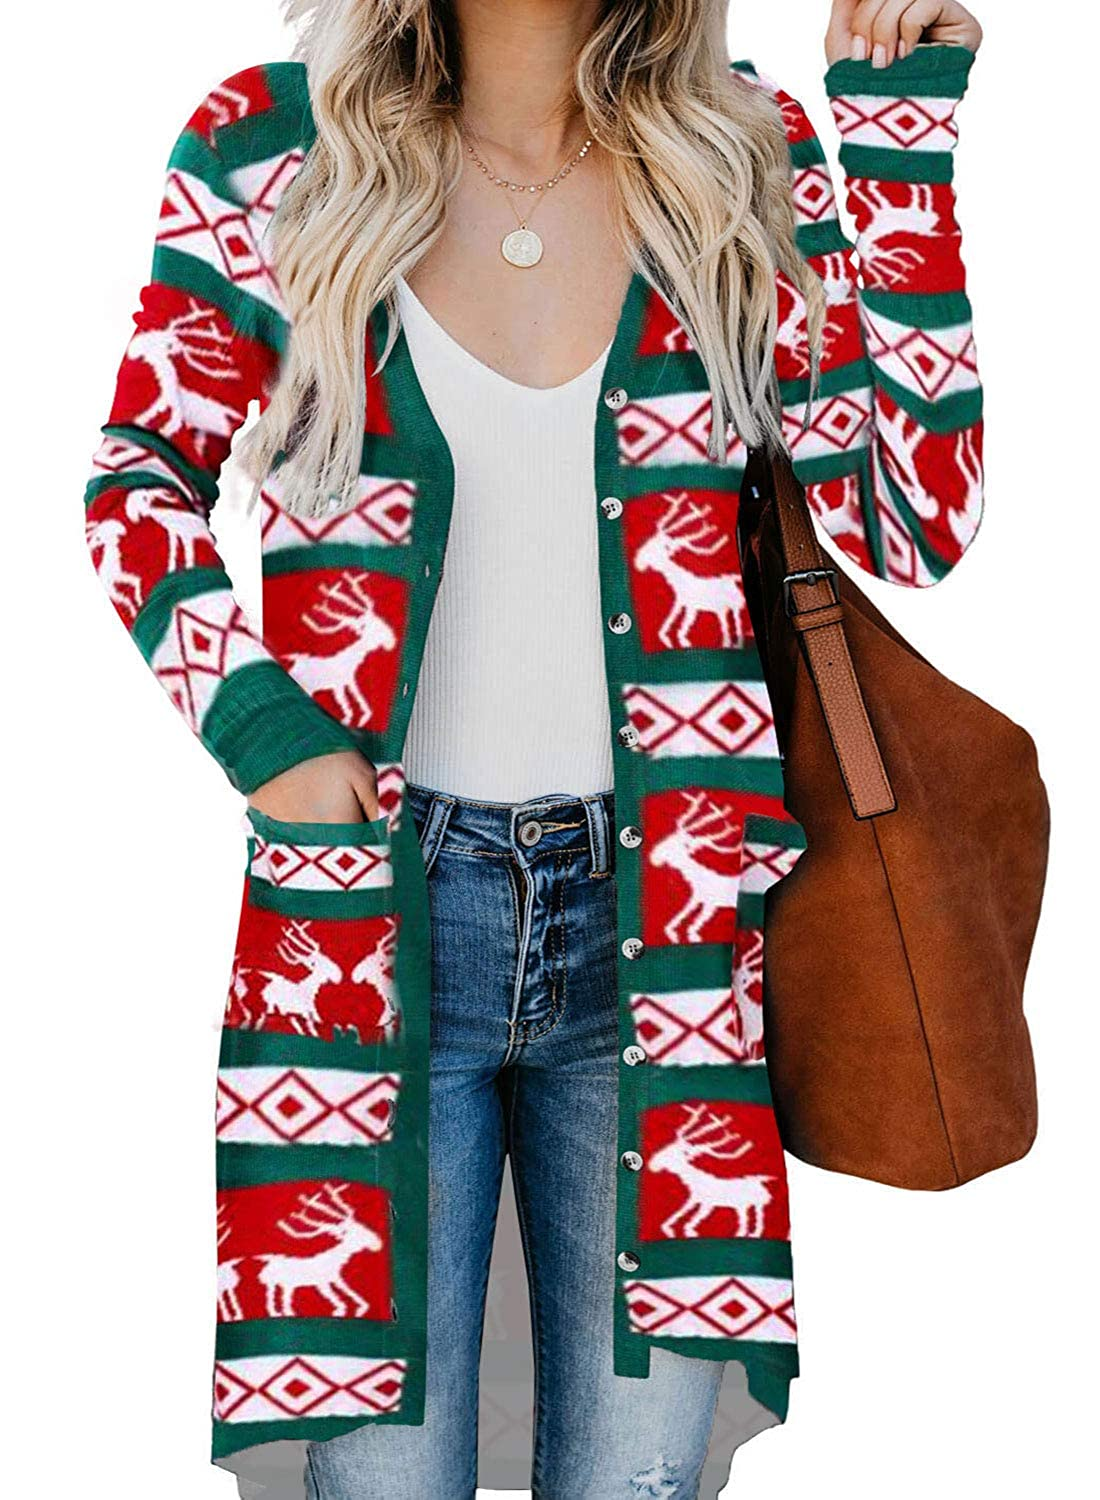 Aleumdr Womens Colorblock Geometric Ribbed Cuffs Christmas Cardigan Sweater with Pockets